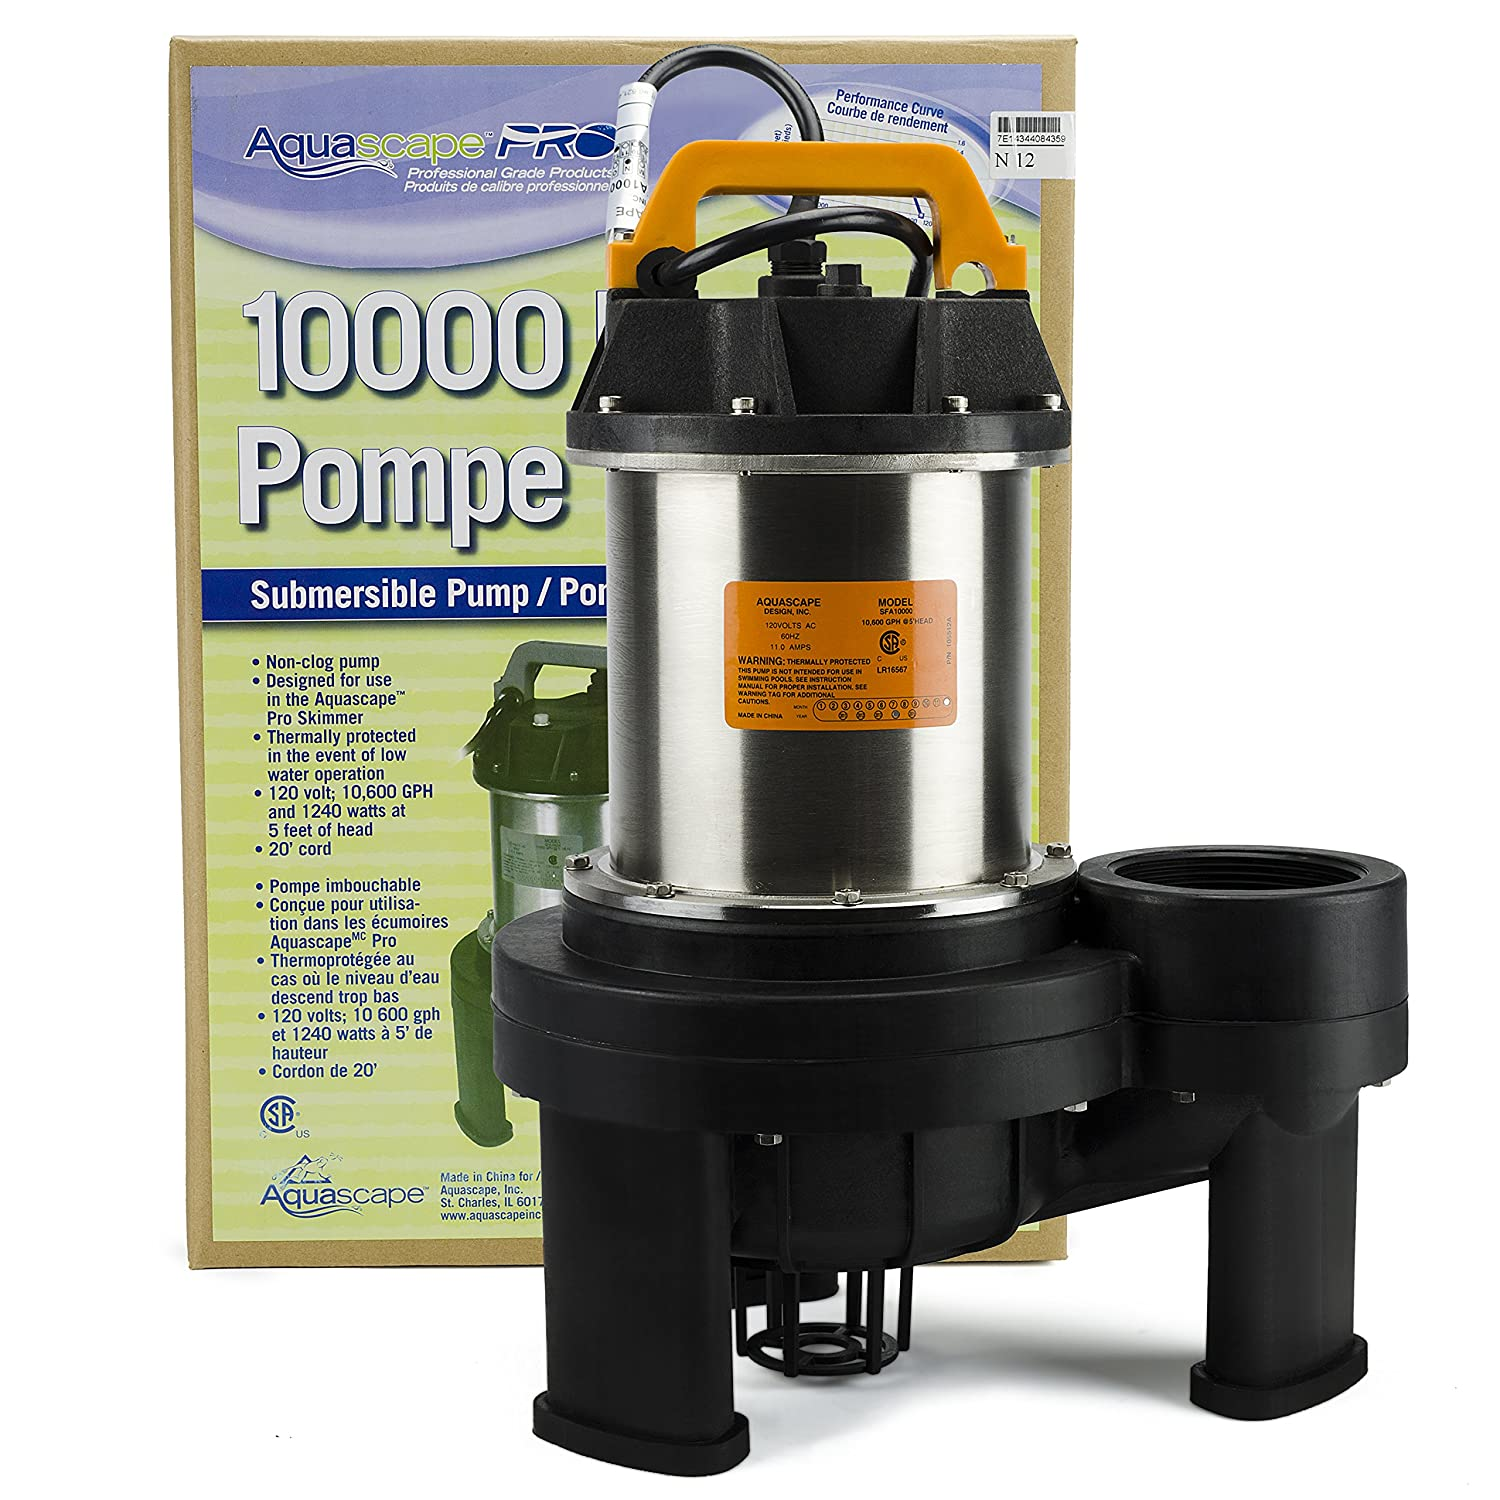 Amazon.com : Aquascape 20006 AquascapePRO 10000 Submersible Pump For Ponds,  Skimmer Filters, And Pondless Waterfalls, 10, 600 GPH : Fountain Pumps :  Garden ...